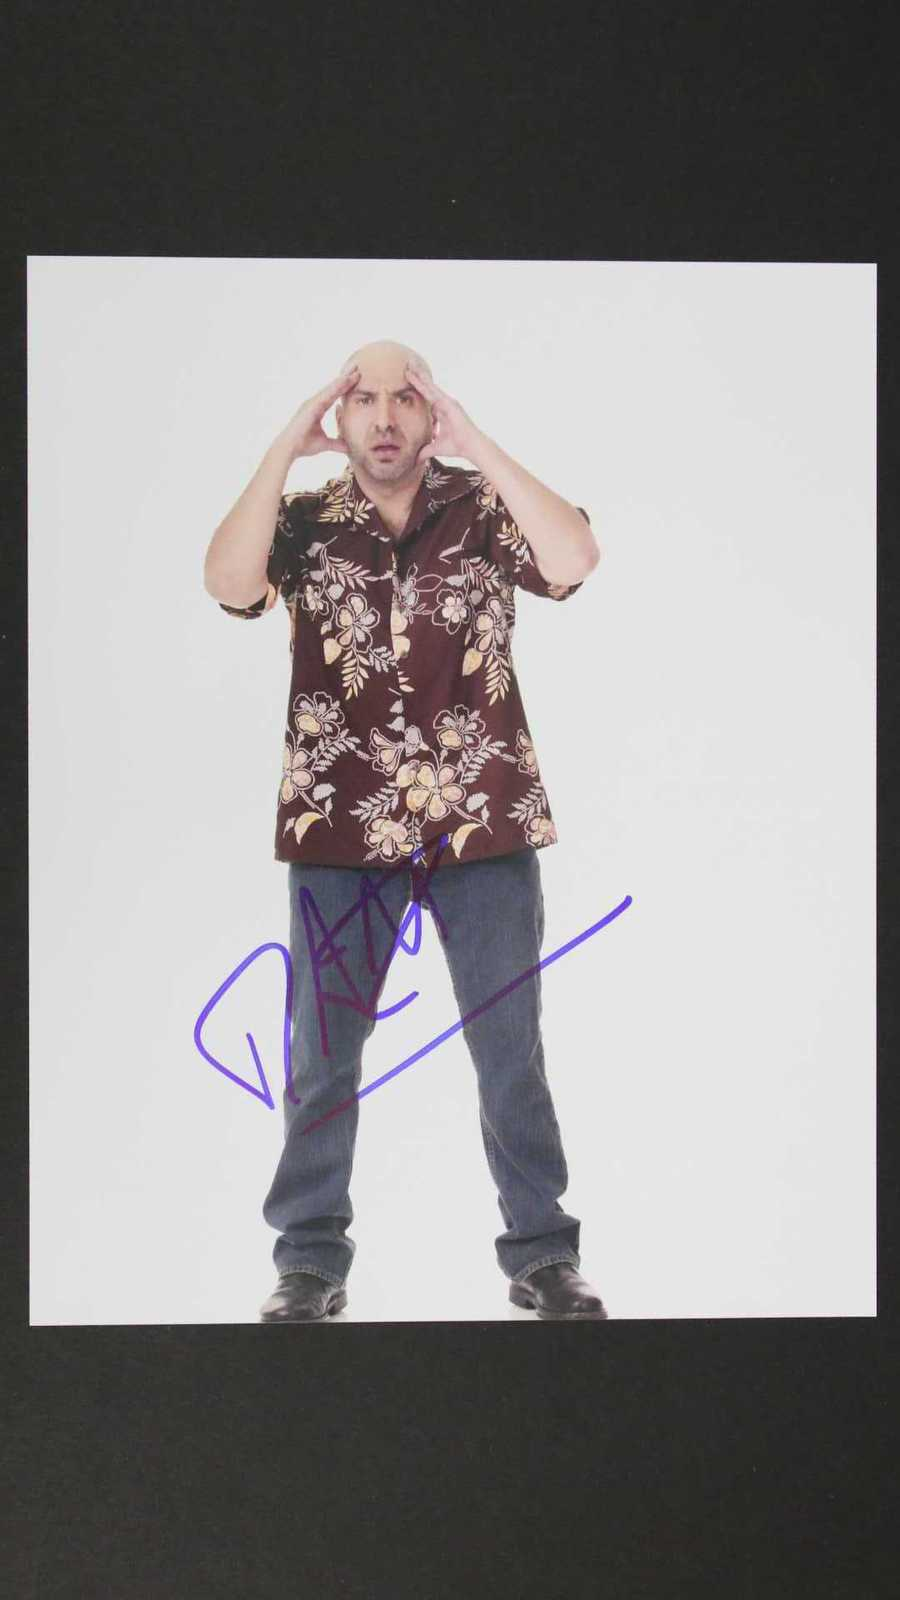 Primary image for Dave Attell Signed Autographed Glossy 8x10 Photo